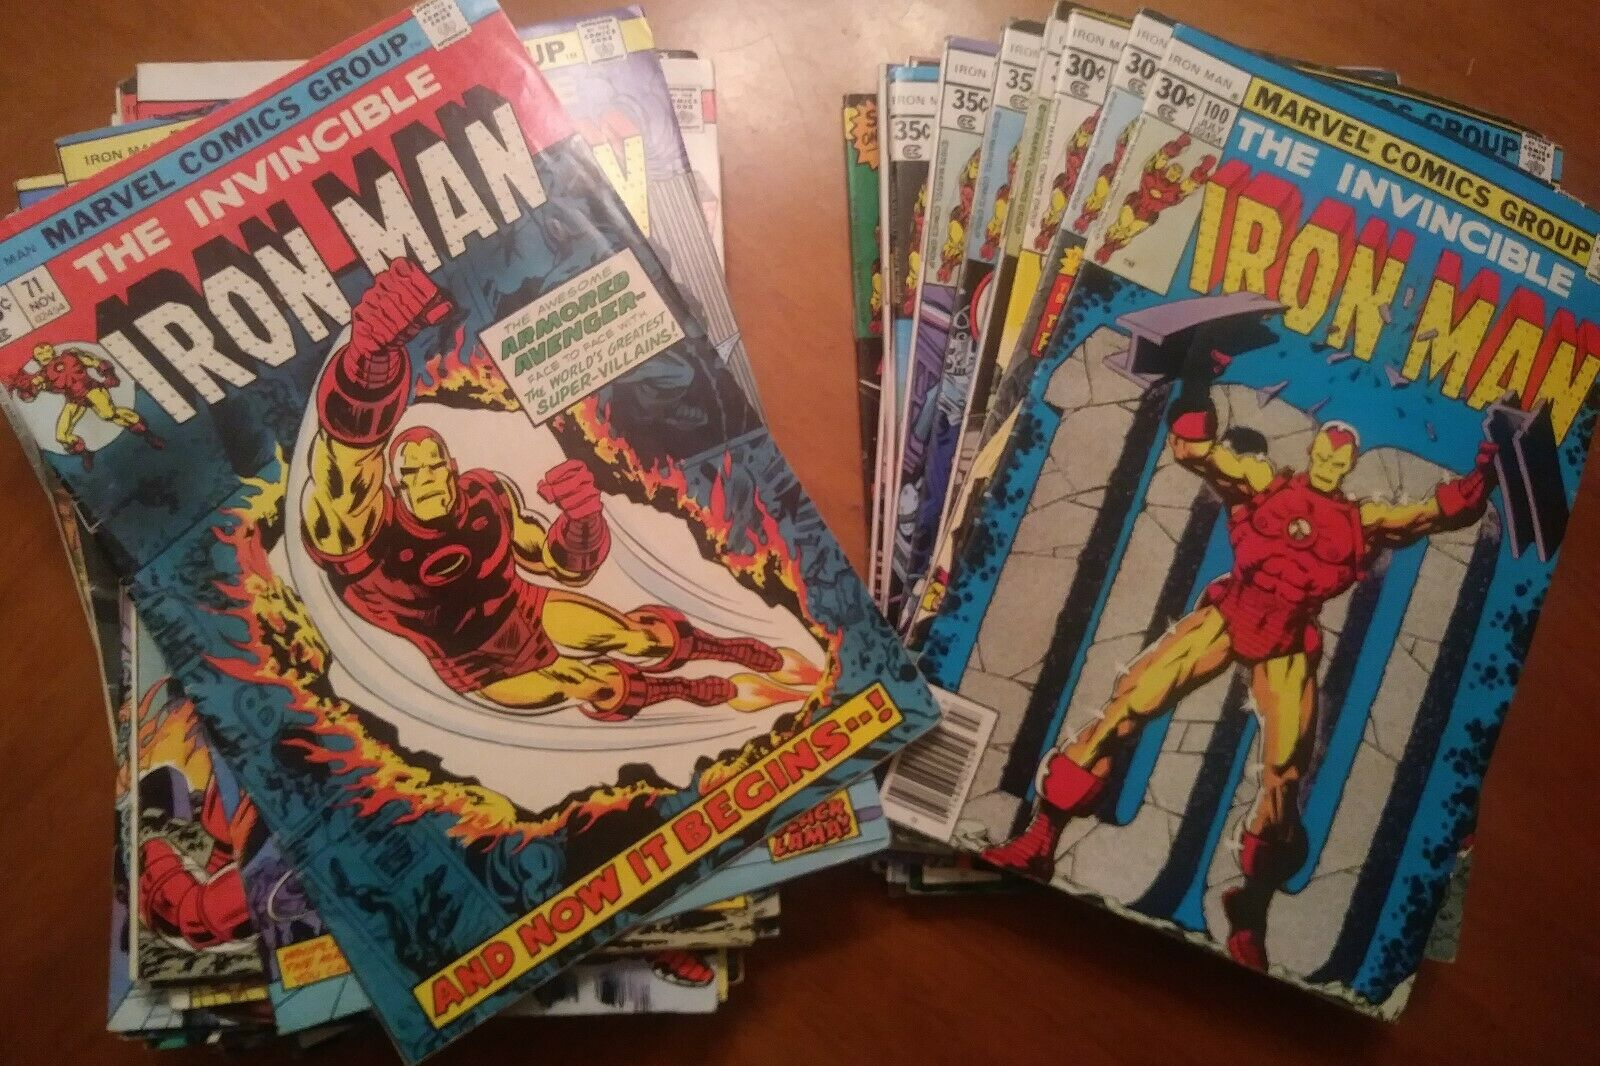 Iron Man Lot-71,72,73,74,75,76,77,78,79,80,81,82,83,84,85,86-100,101,102-117,119